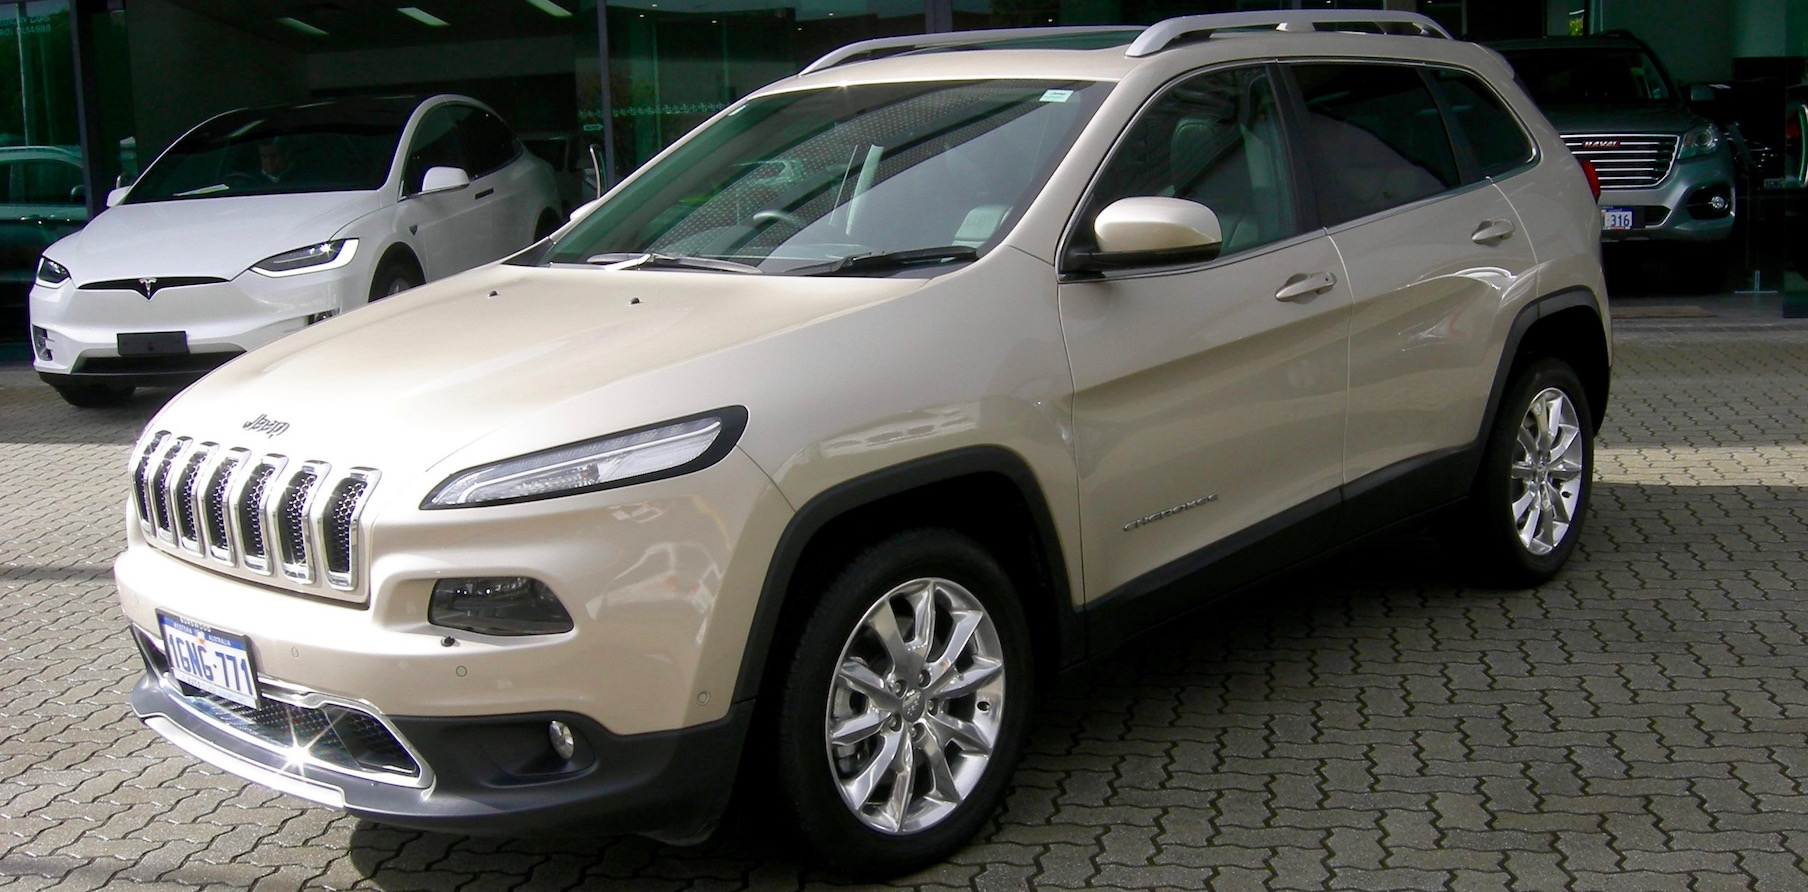 Jeep Cherokee SUV for sale in Perth